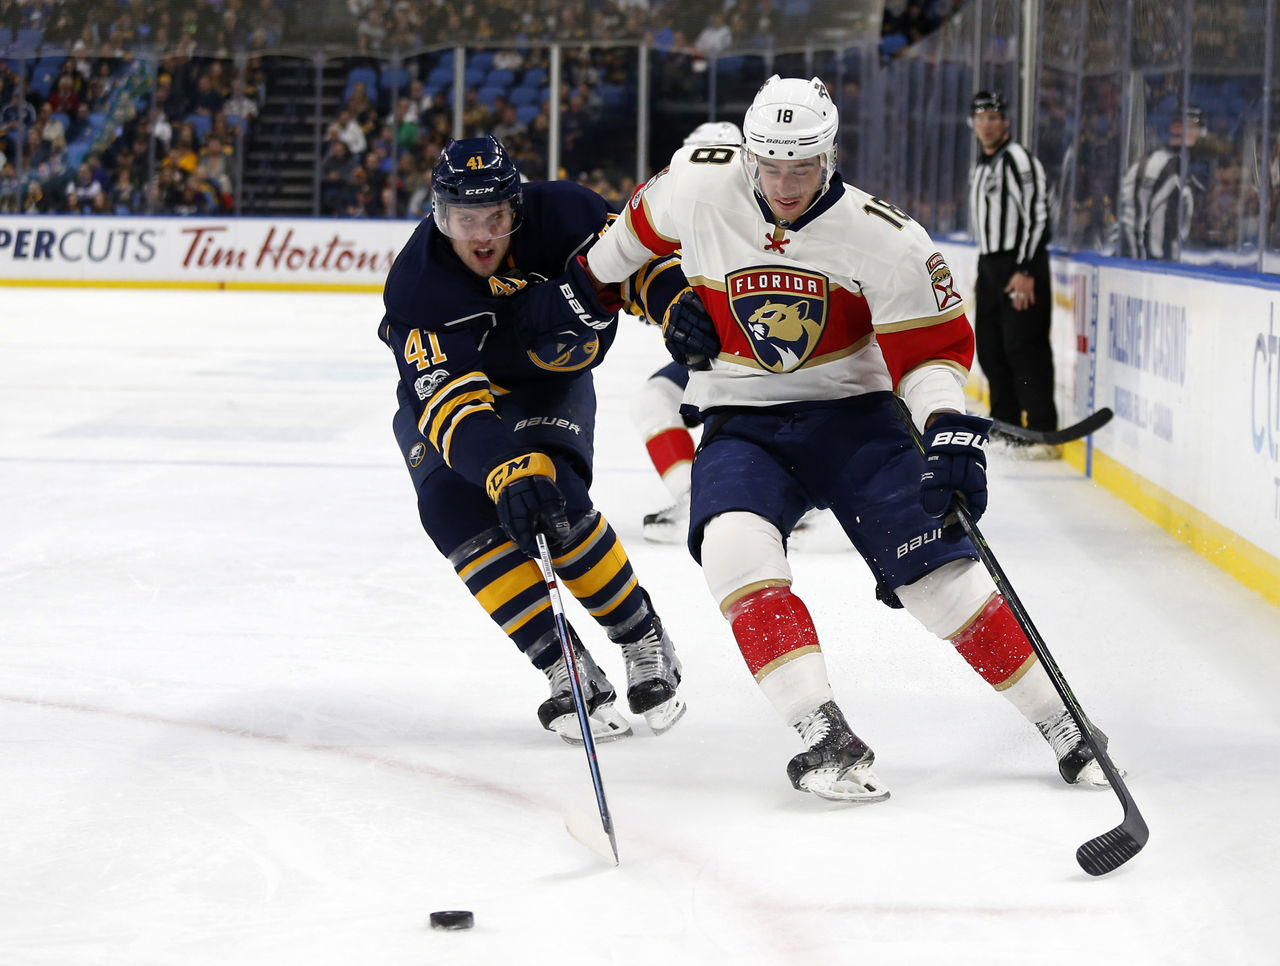 Cropped 2017 03 28t001439z 1959383563 nocid rtrmadp 3 nhl florida panthers at buffalo sabres